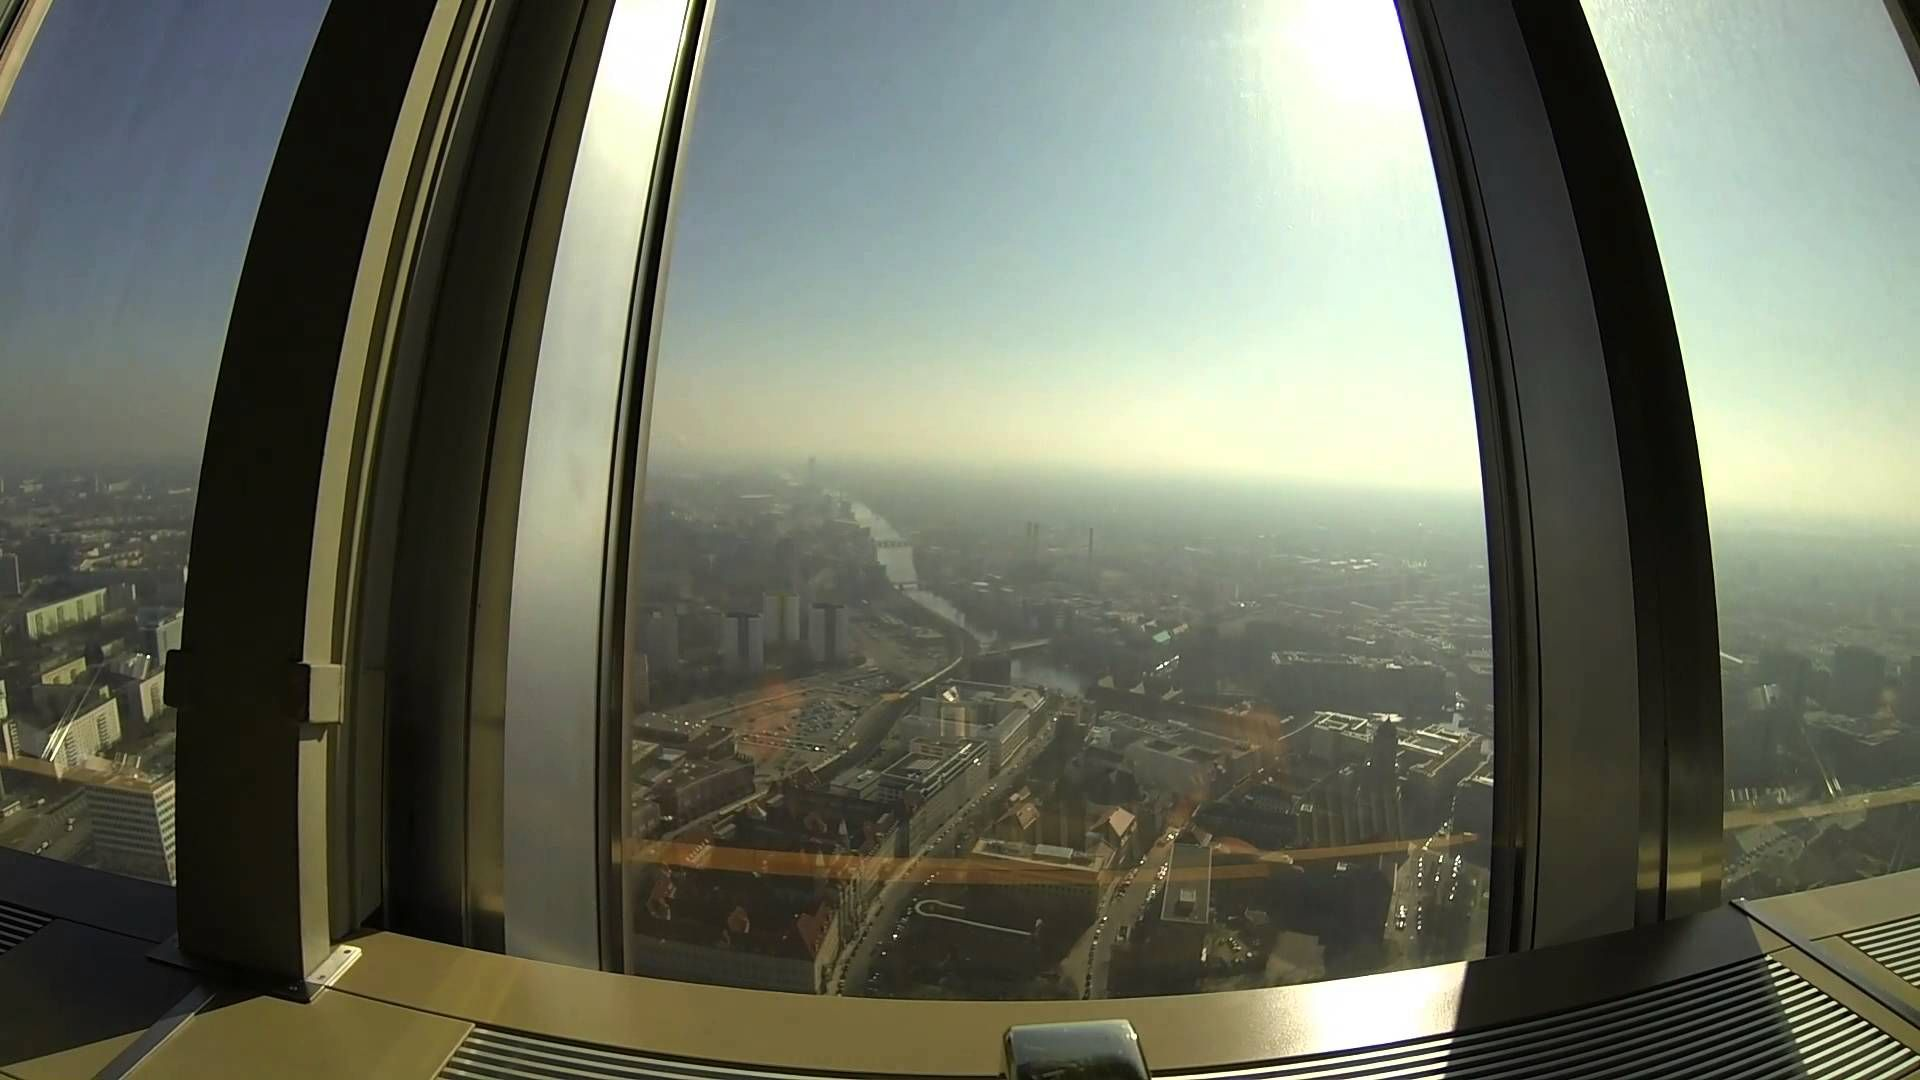 Berlin Tv Tower Rotating Restaurant Germany Historical And